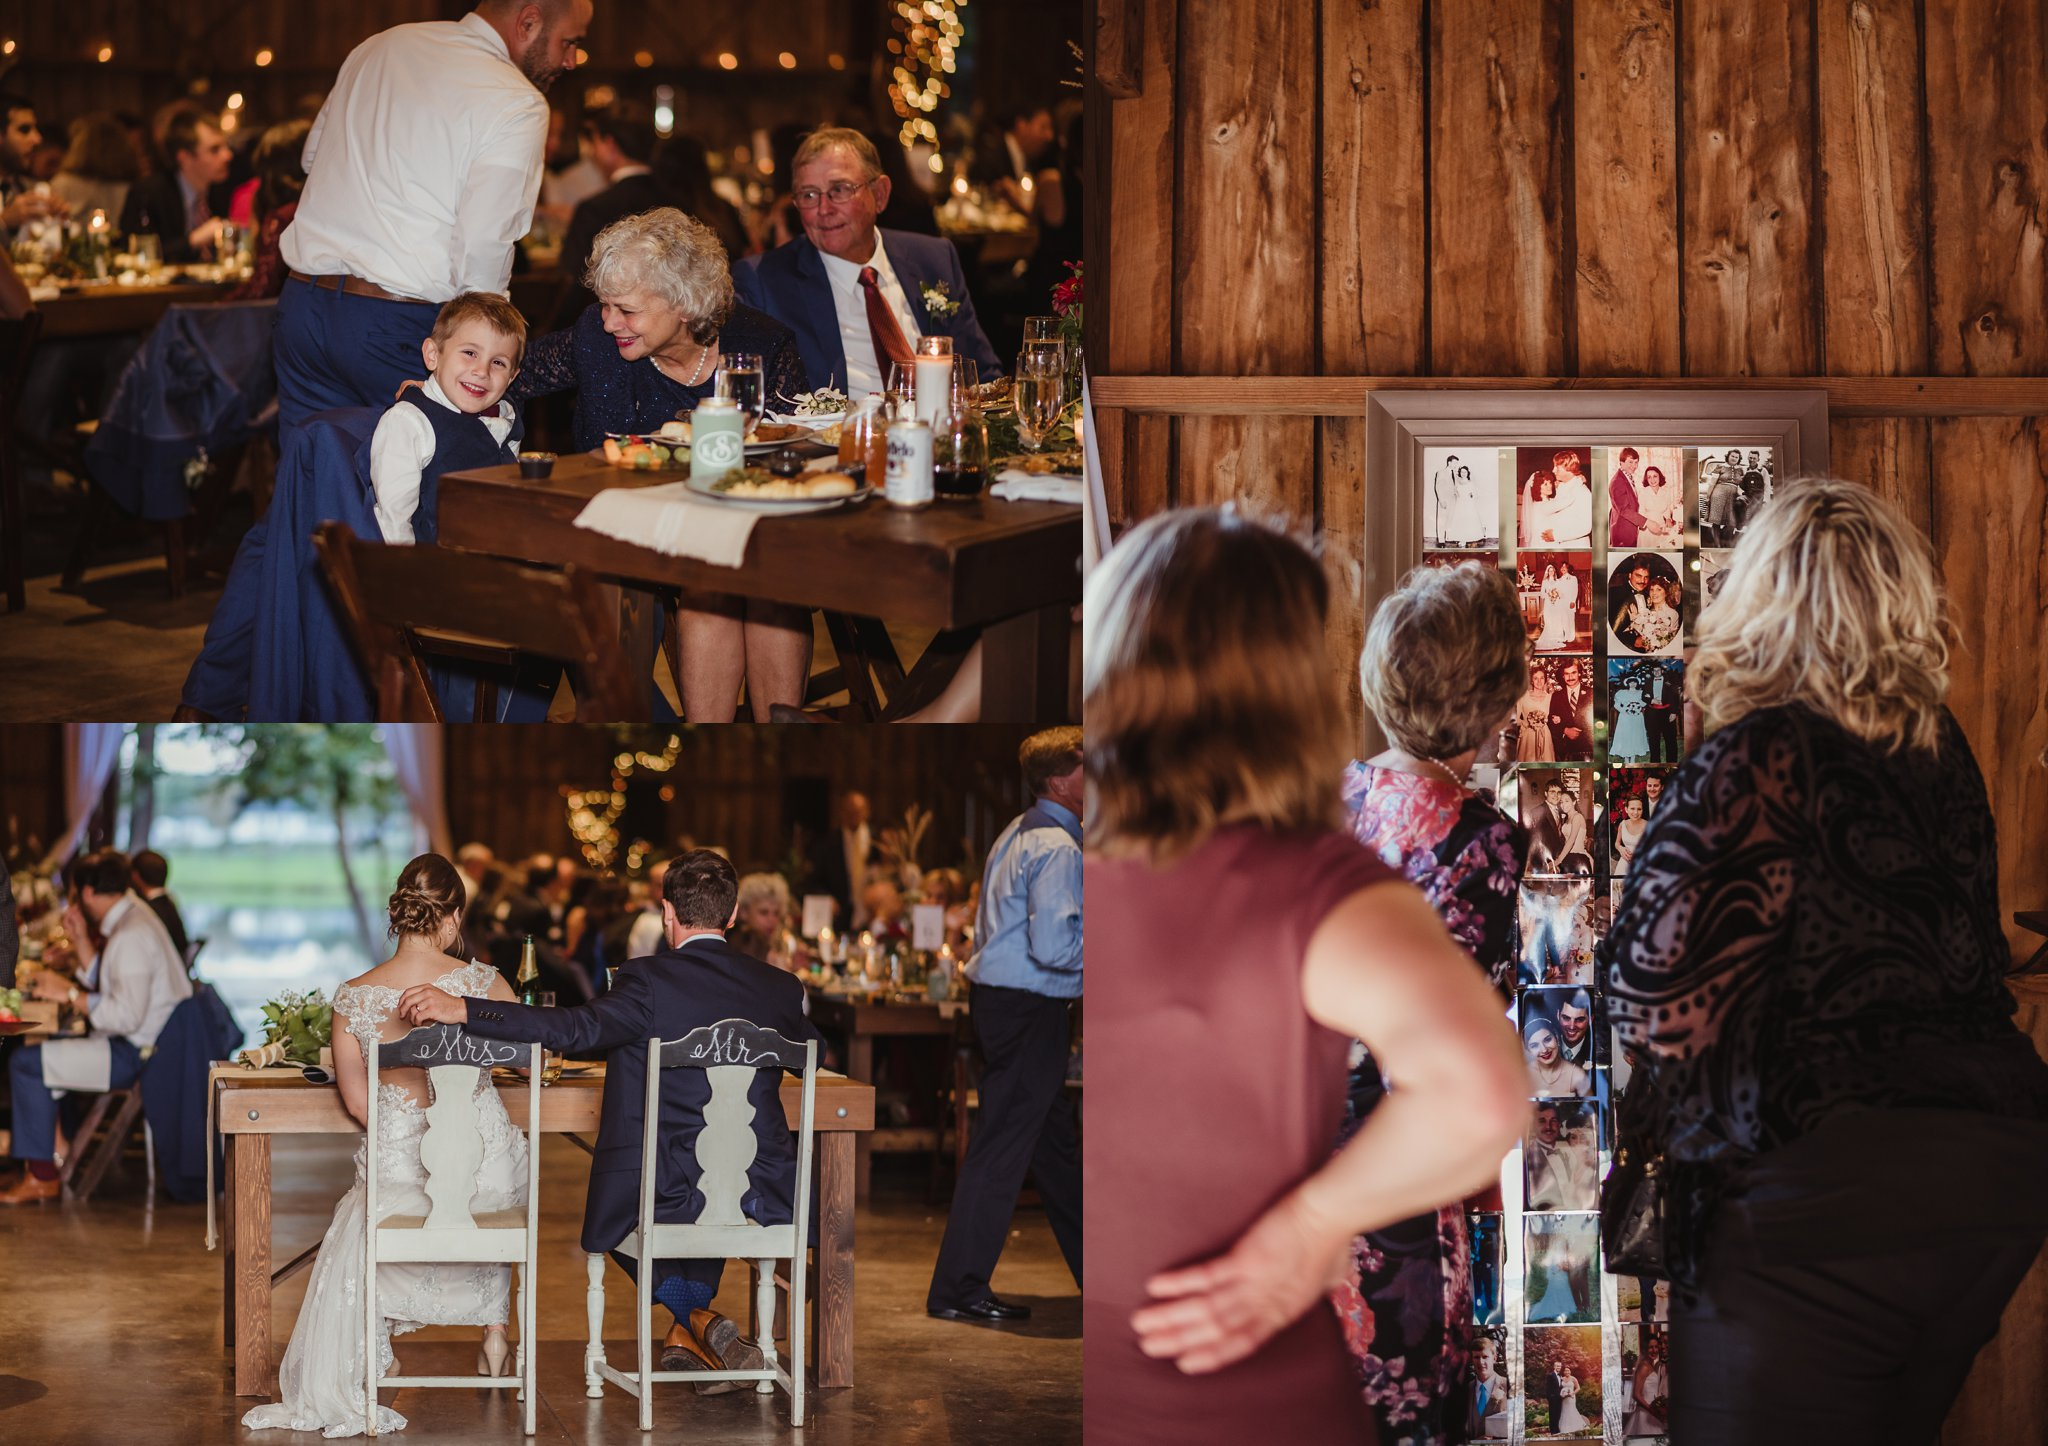 The bride and groom and their guests enjoy each other during their wedding reception at the Little Herb House in Raleigh, North Carolina. Photos by Rose Trail Images.